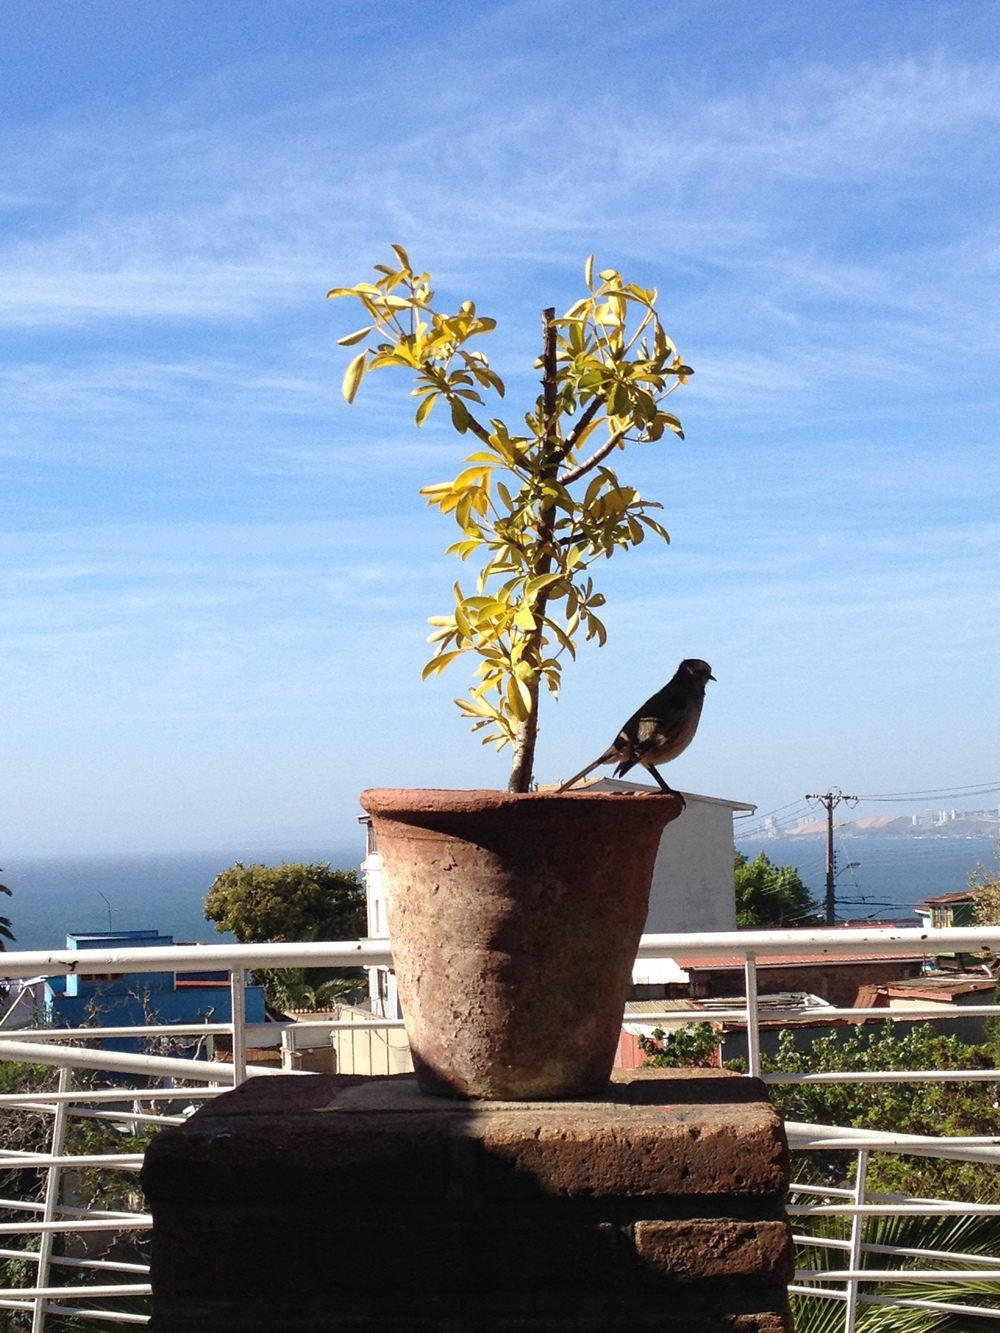 I made friends with this bird at Pablo Neruda's house.